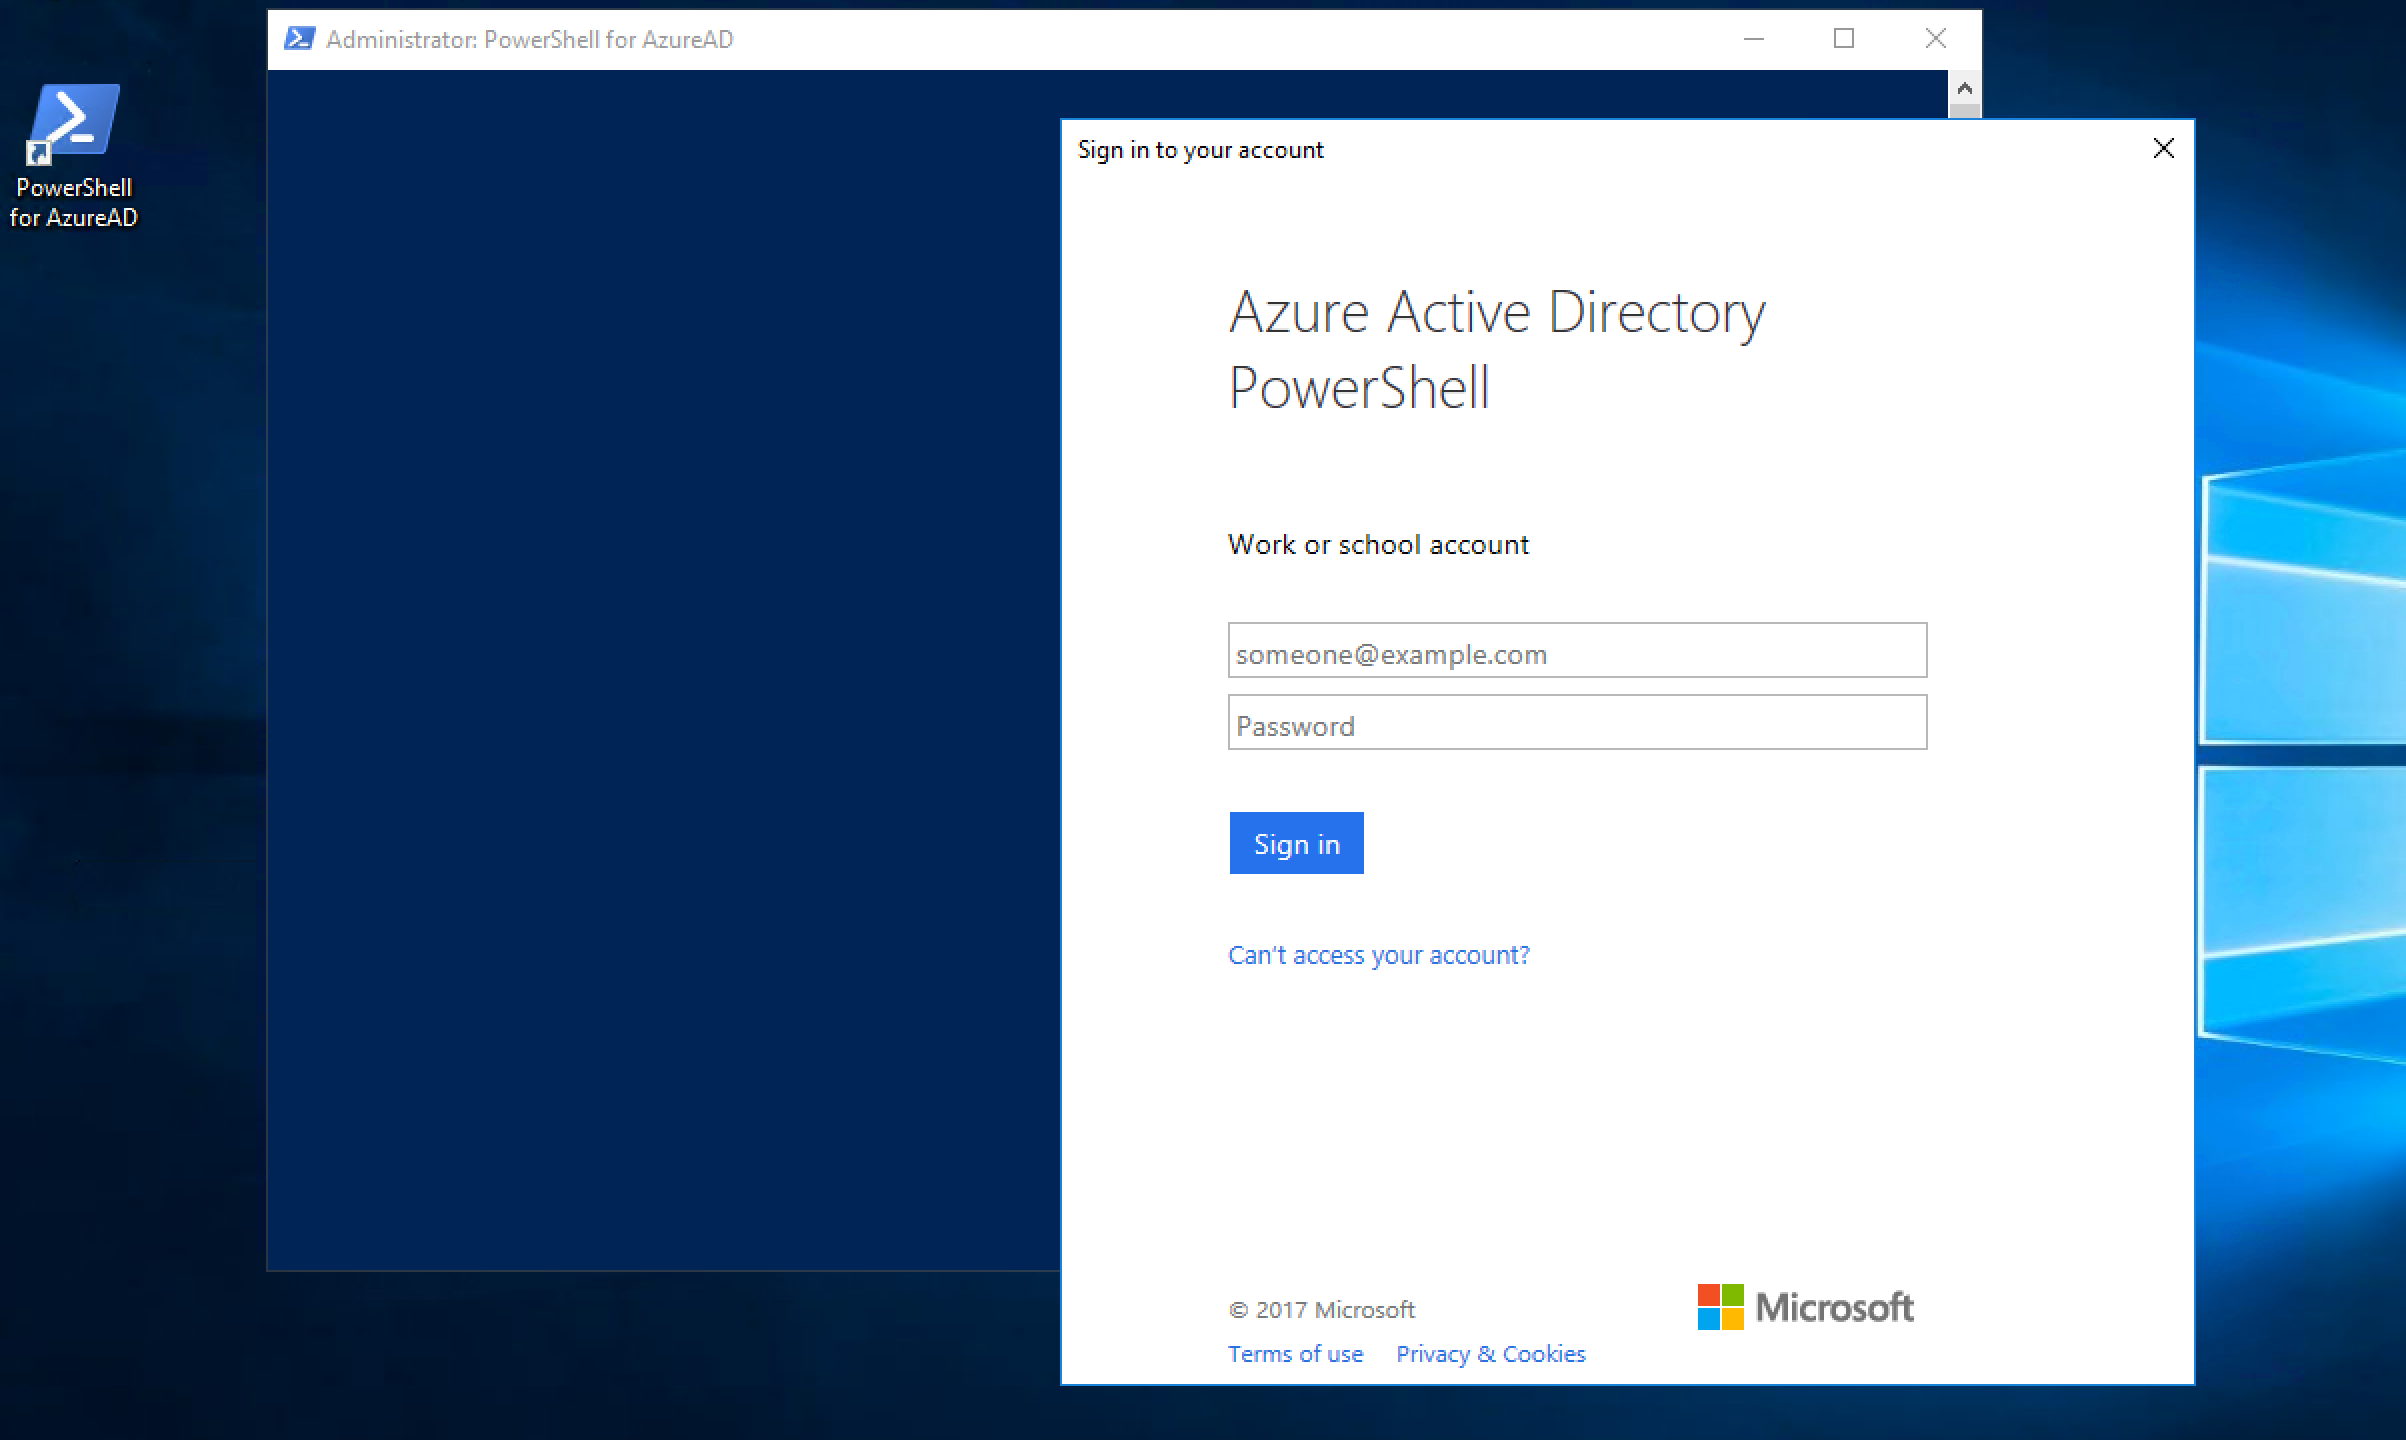 PowerShell for AzureAD Launched